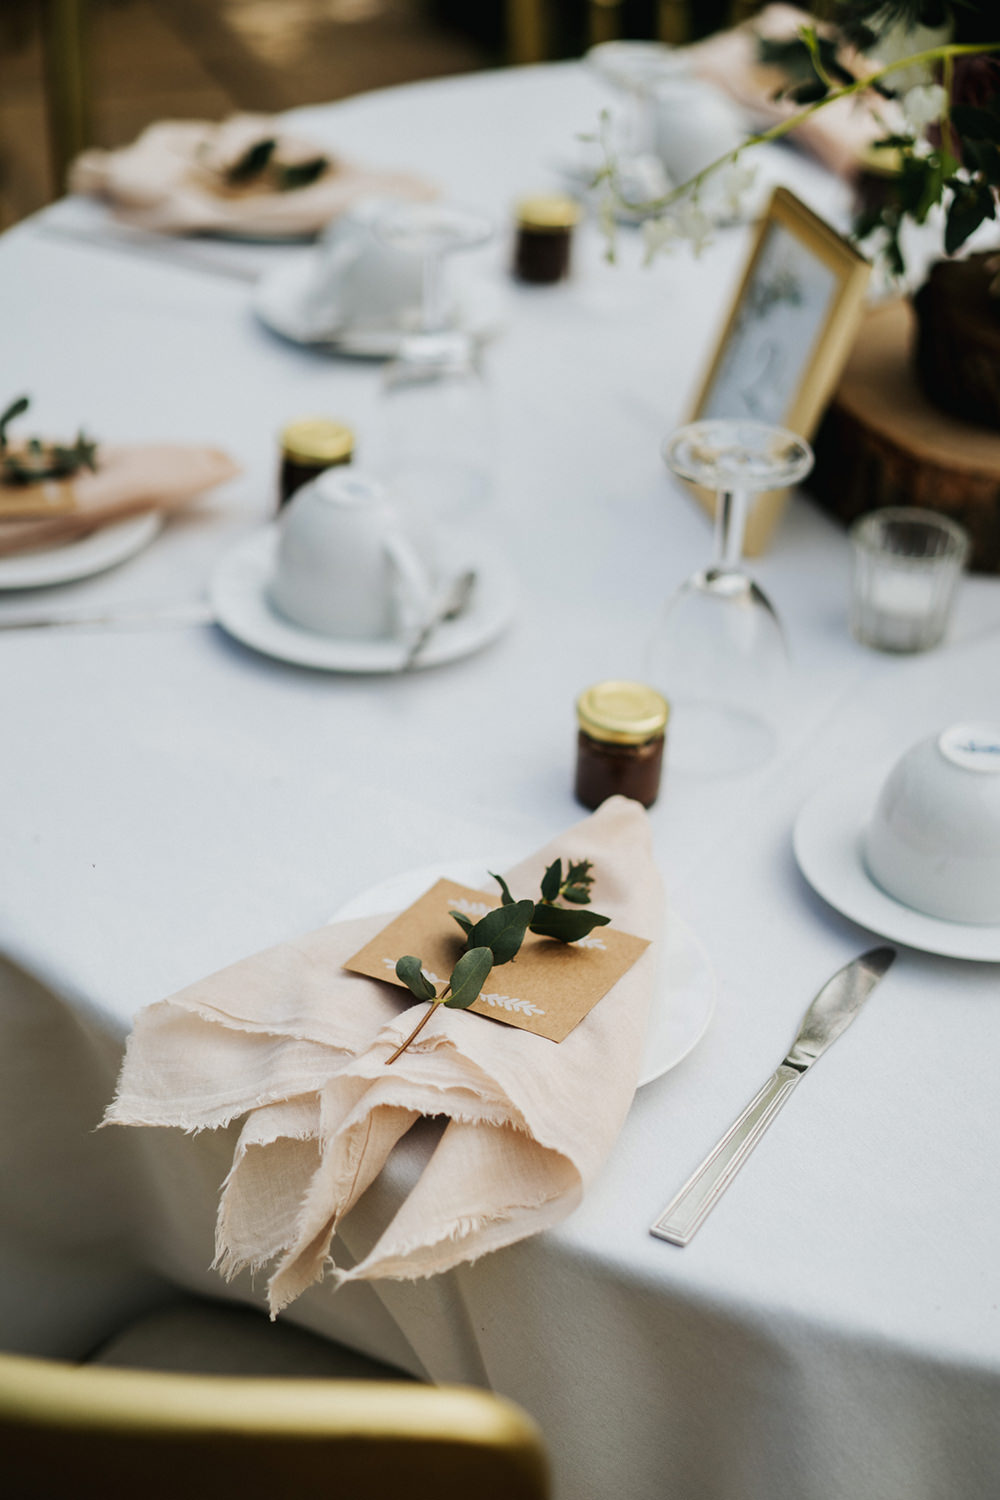 Napkins Blush Place Setting Decor Greenhouse Wedding Kit Myers Photography